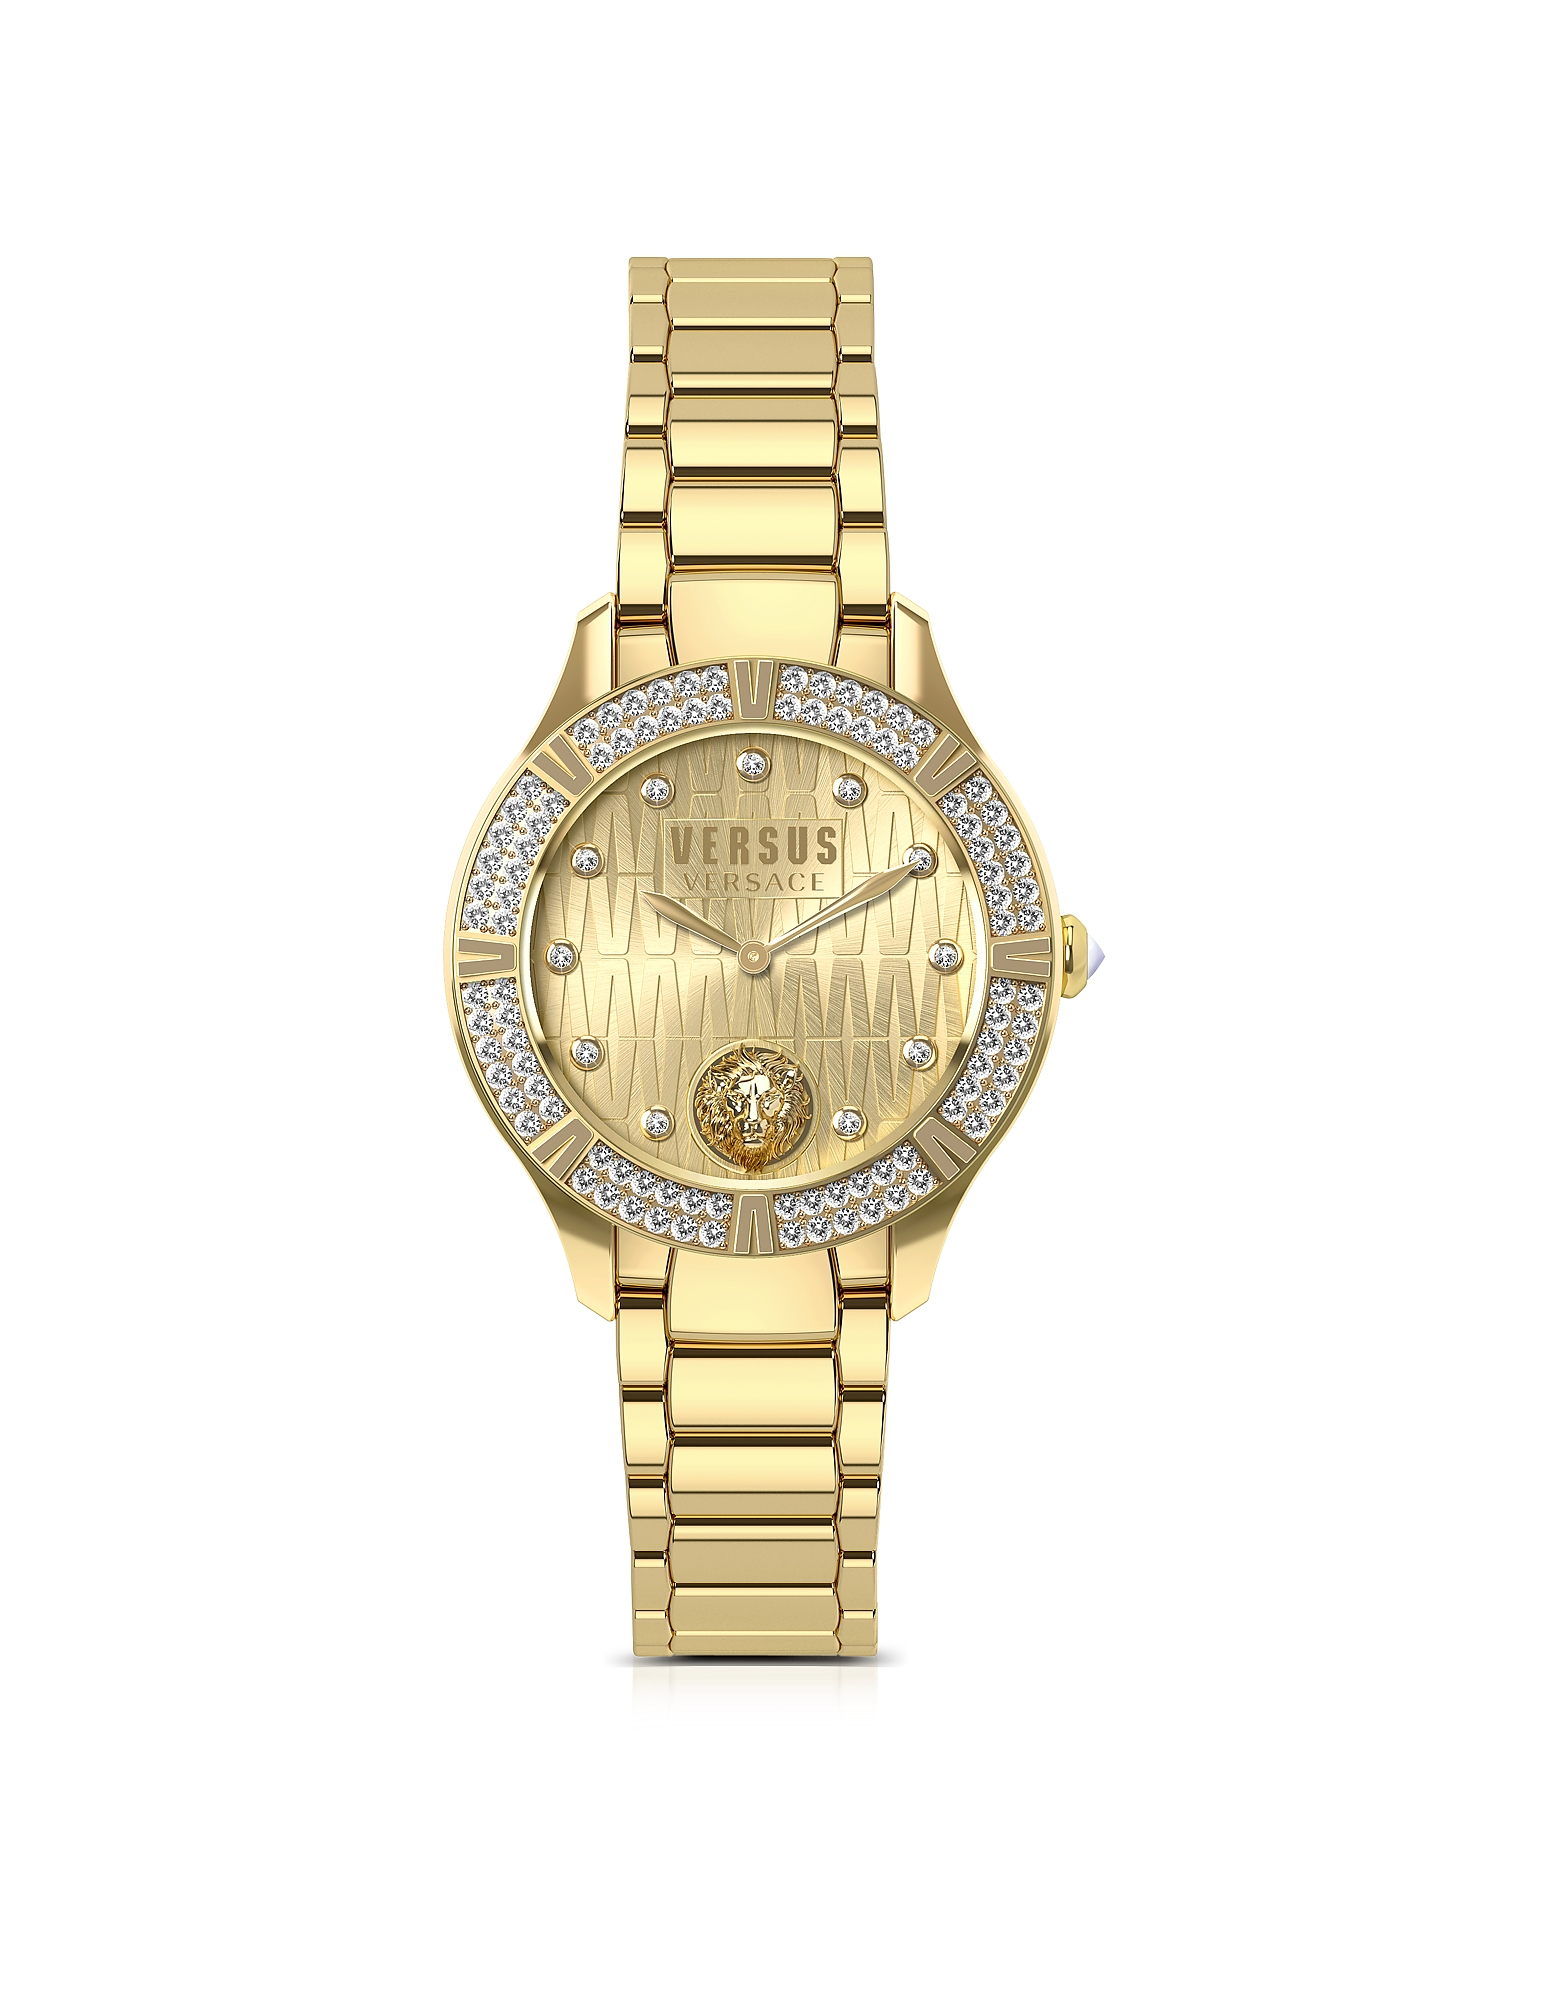 Canton Road Gold Tone Stainless Steel Women's Bracelet Watch w/Crystals